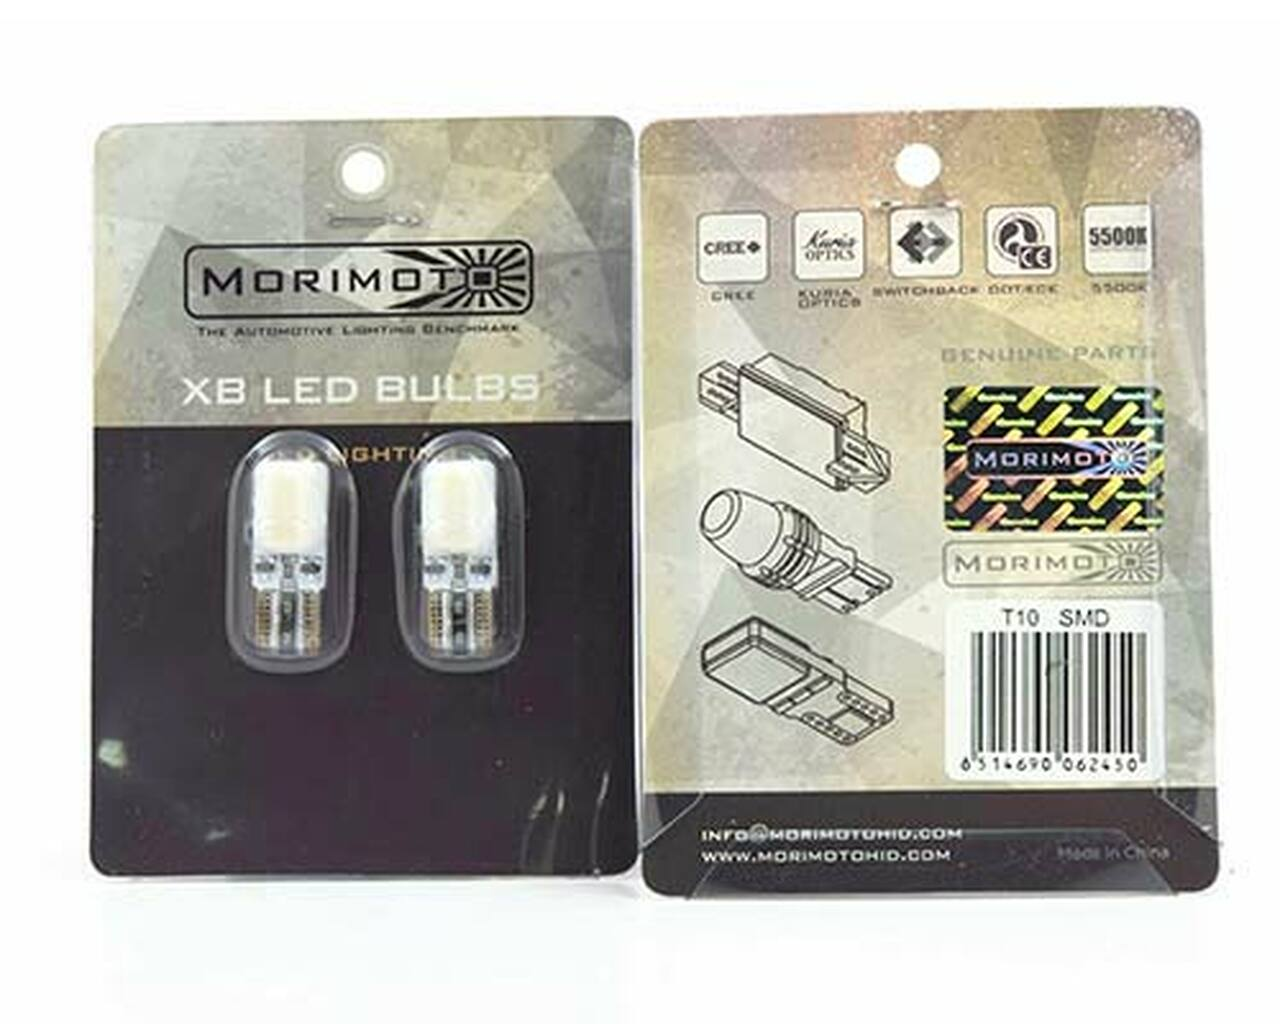 Camry Interior LED Lighting 3 piece set (White 5500K)